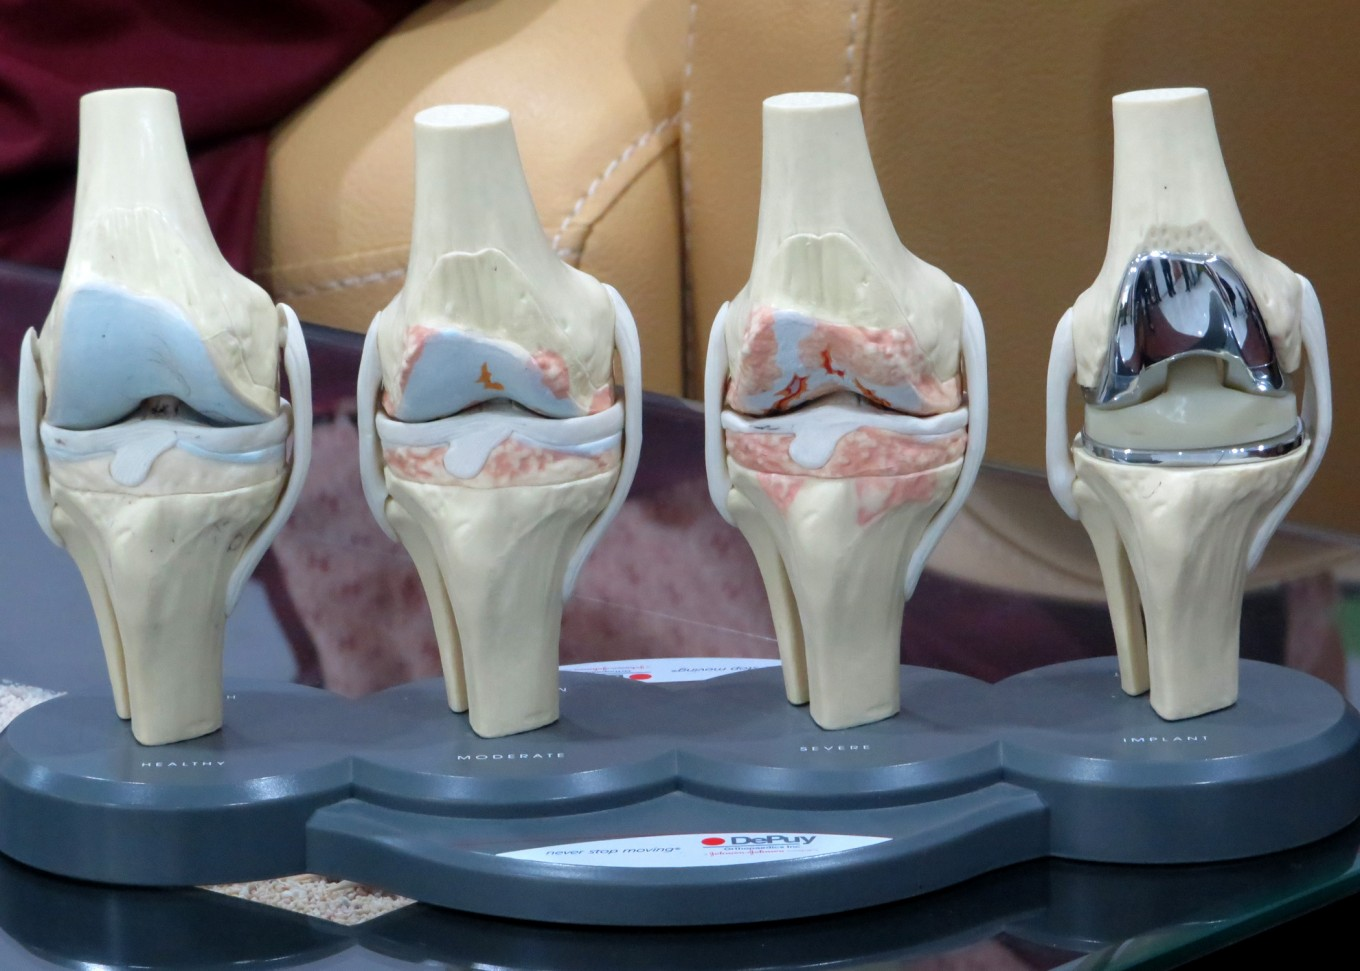 Getting to know knee injuries